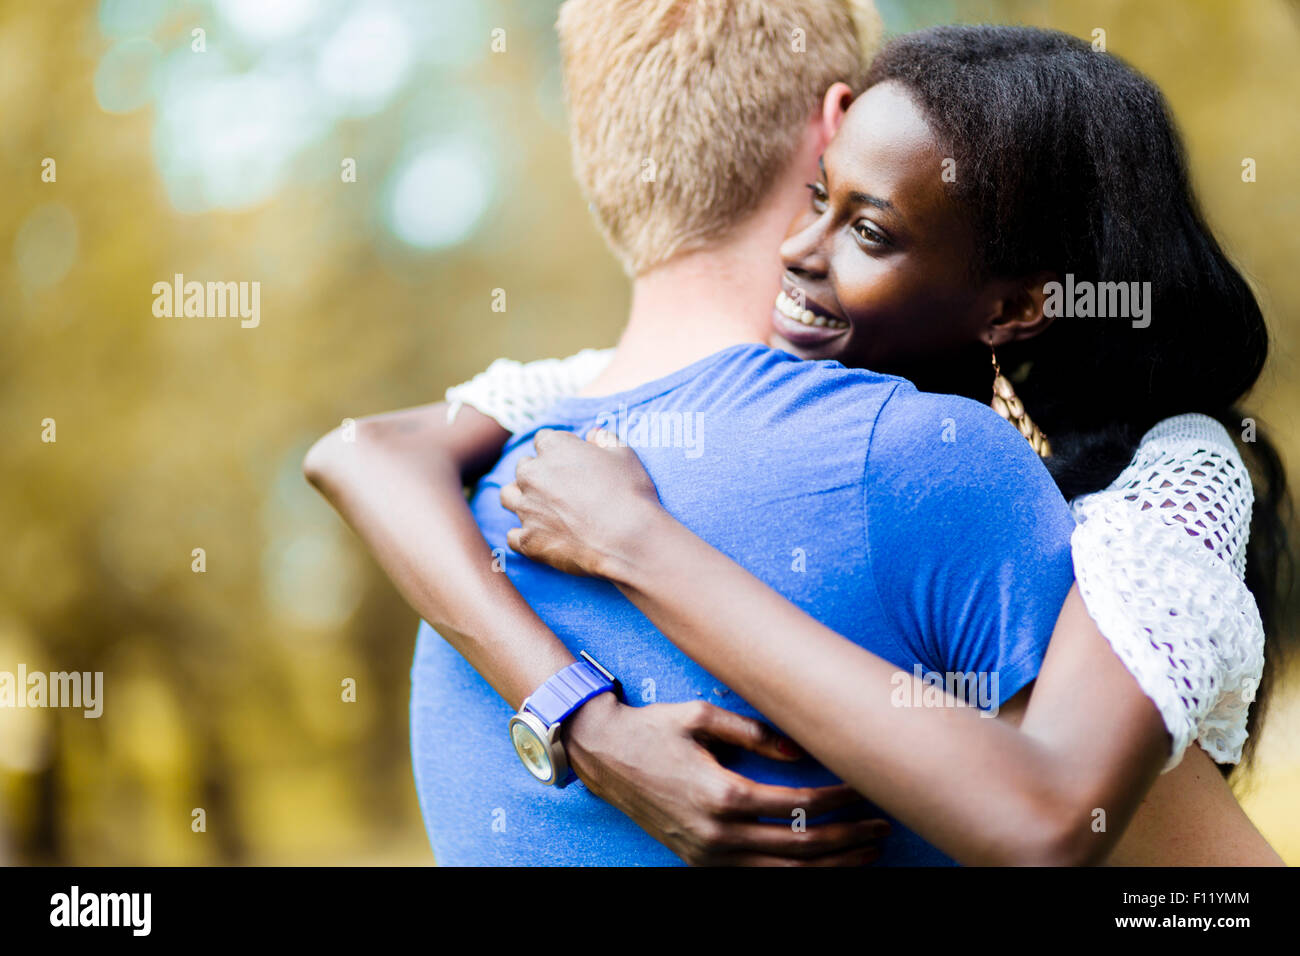 Couple in love hugging peacfully outdoors and being truly happy. Feeling of security and serenity - Stock Image